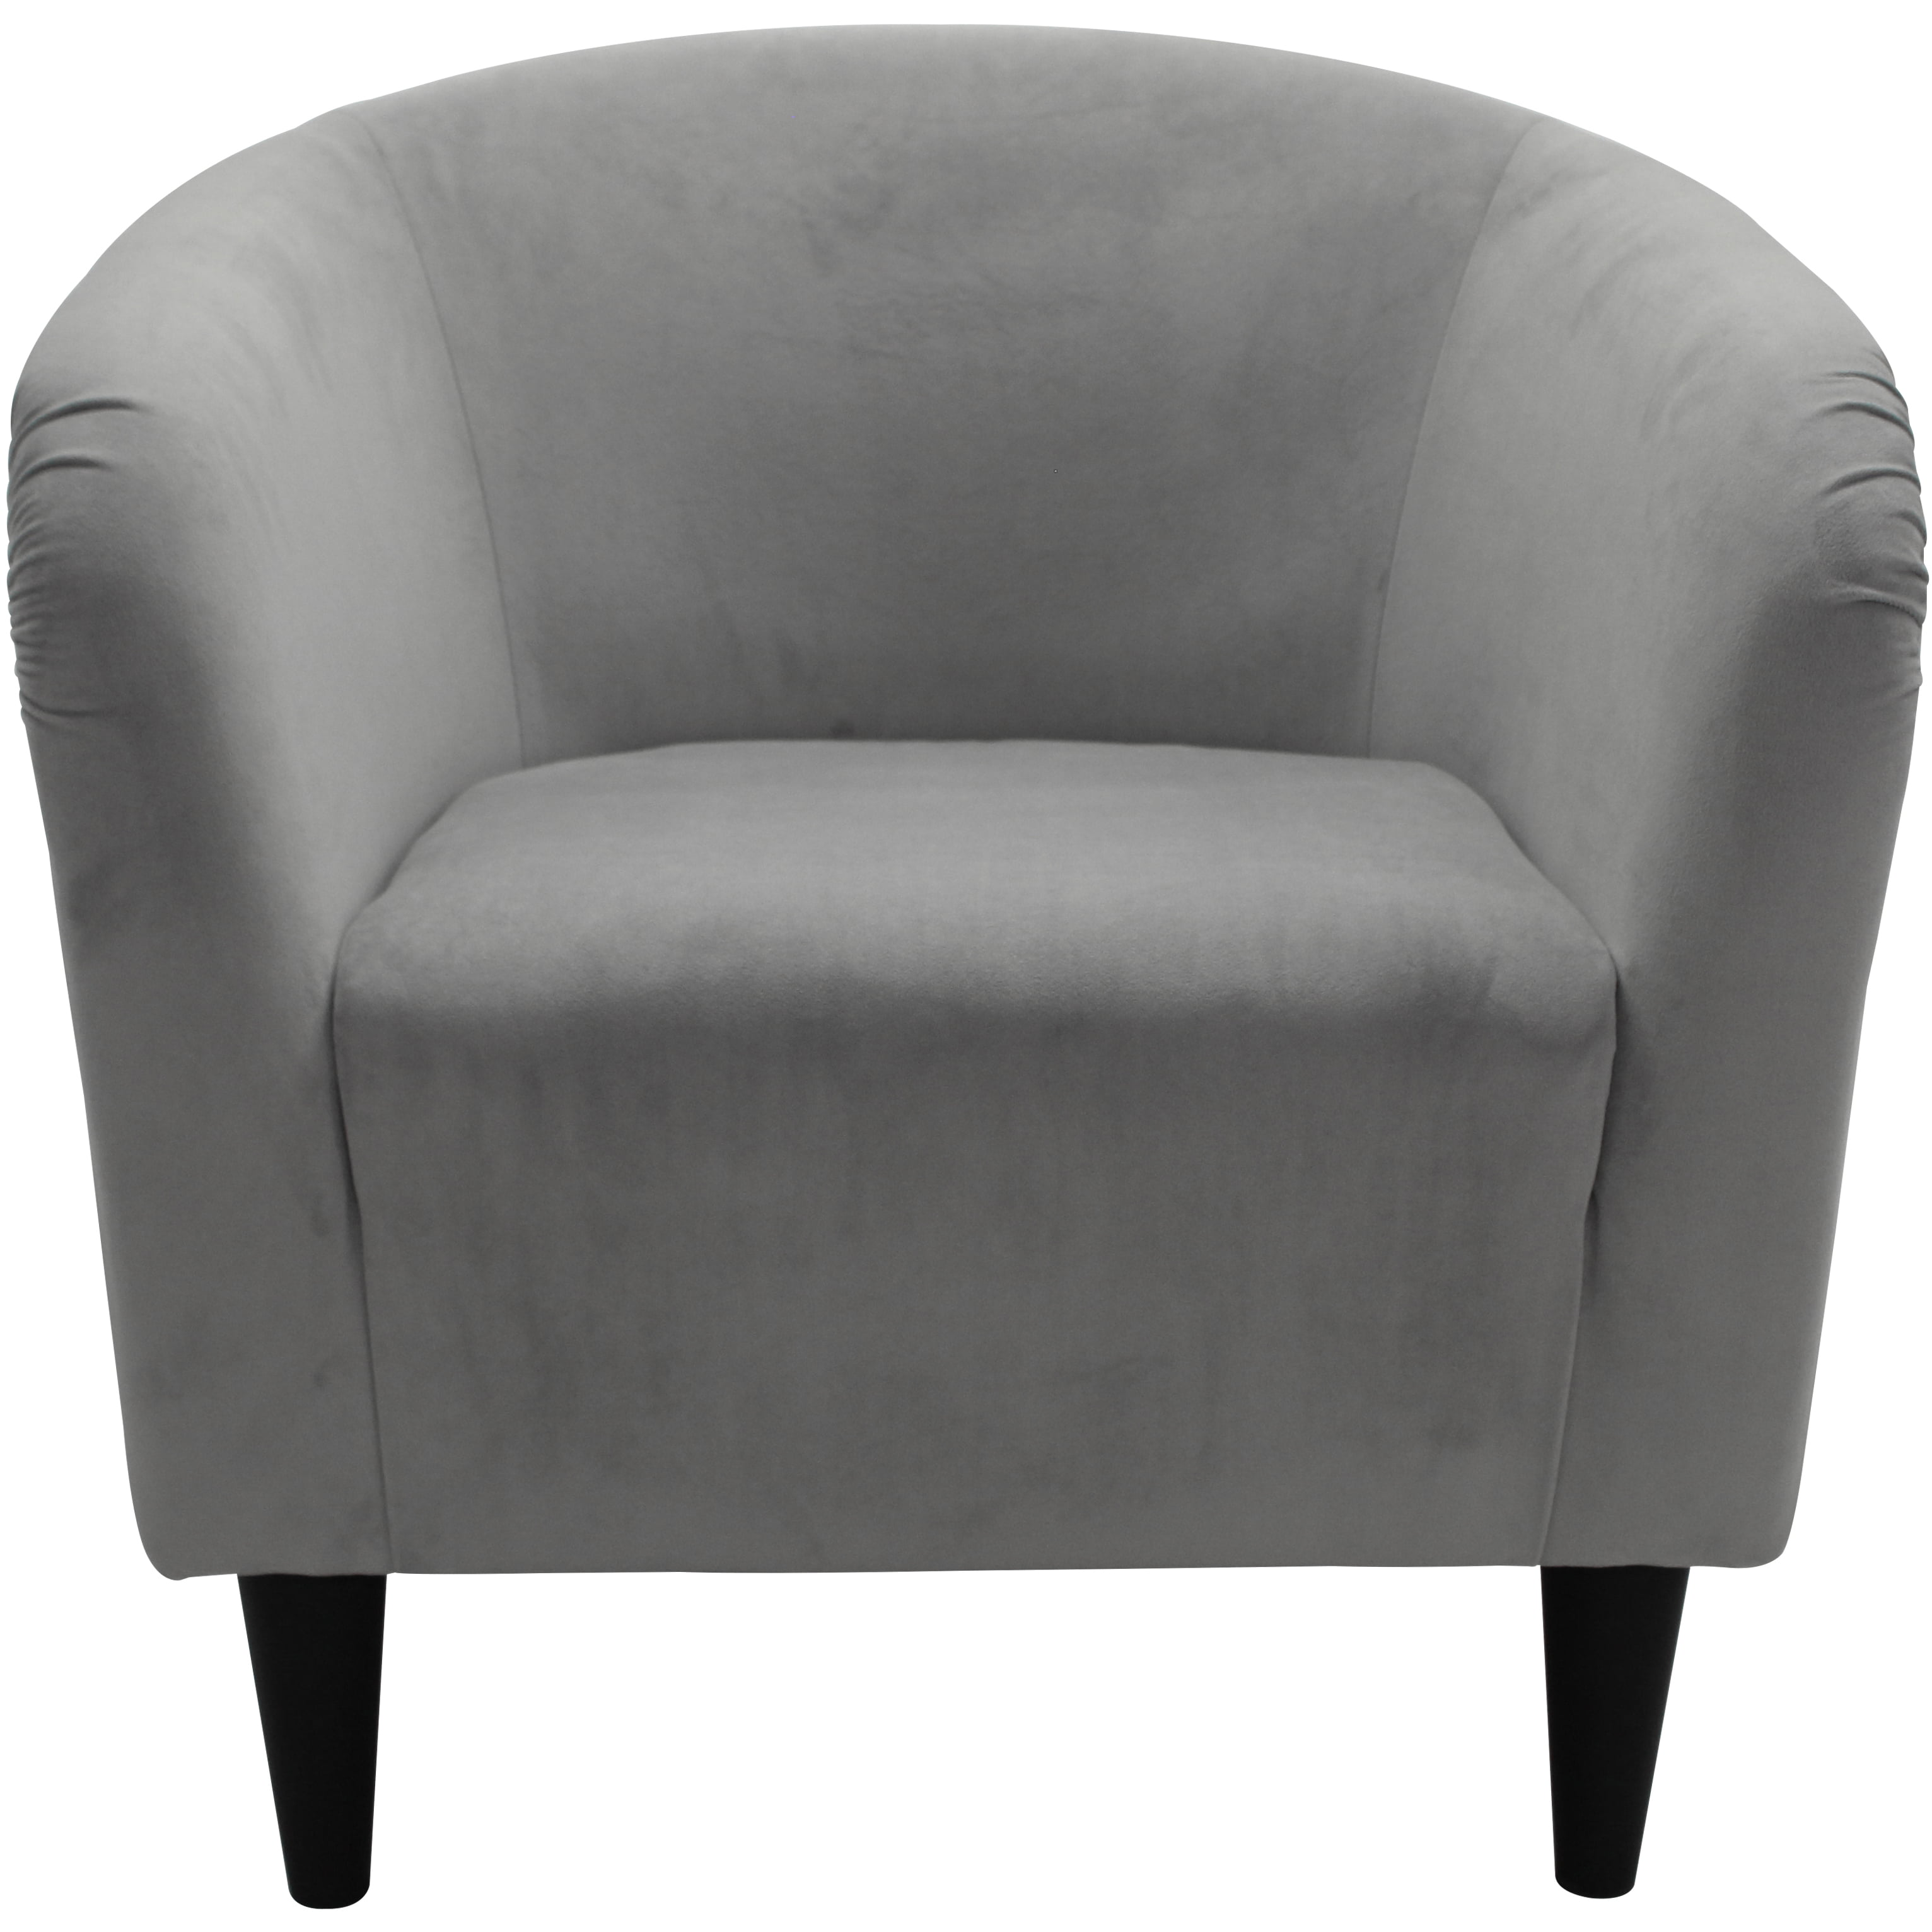 Awesome Details About Tub Accent Chair Dove Gray Microfiber Upholstery Padded Seat Living Furniture Ncnpc Chair Design For Home Ncnpcorg